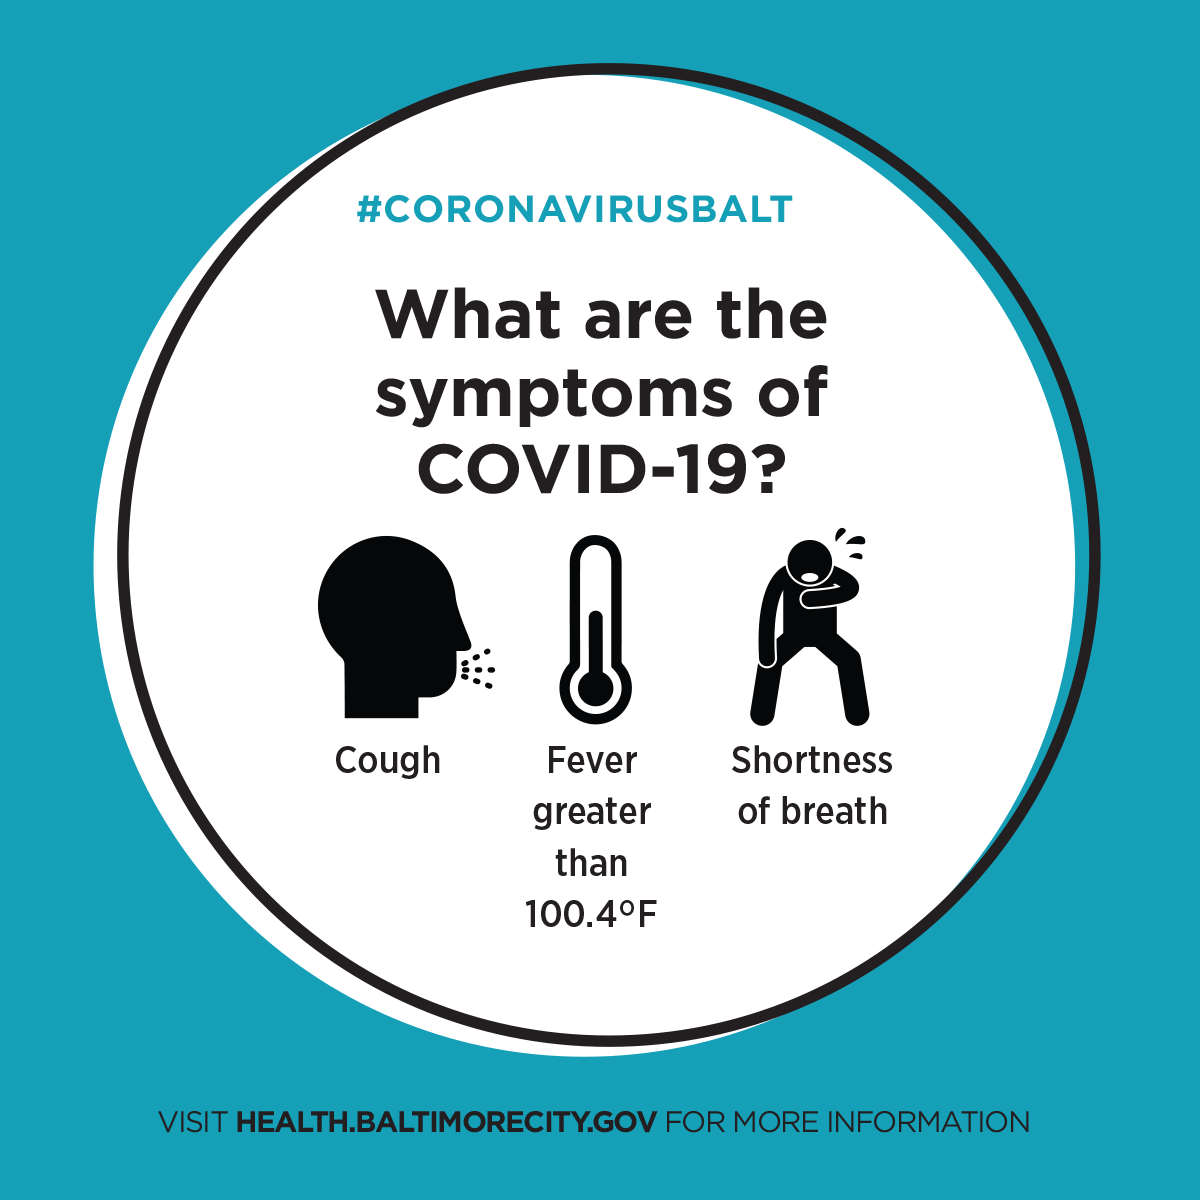 Symptoms include cough, fever greater than 100.4 and shortness of breath